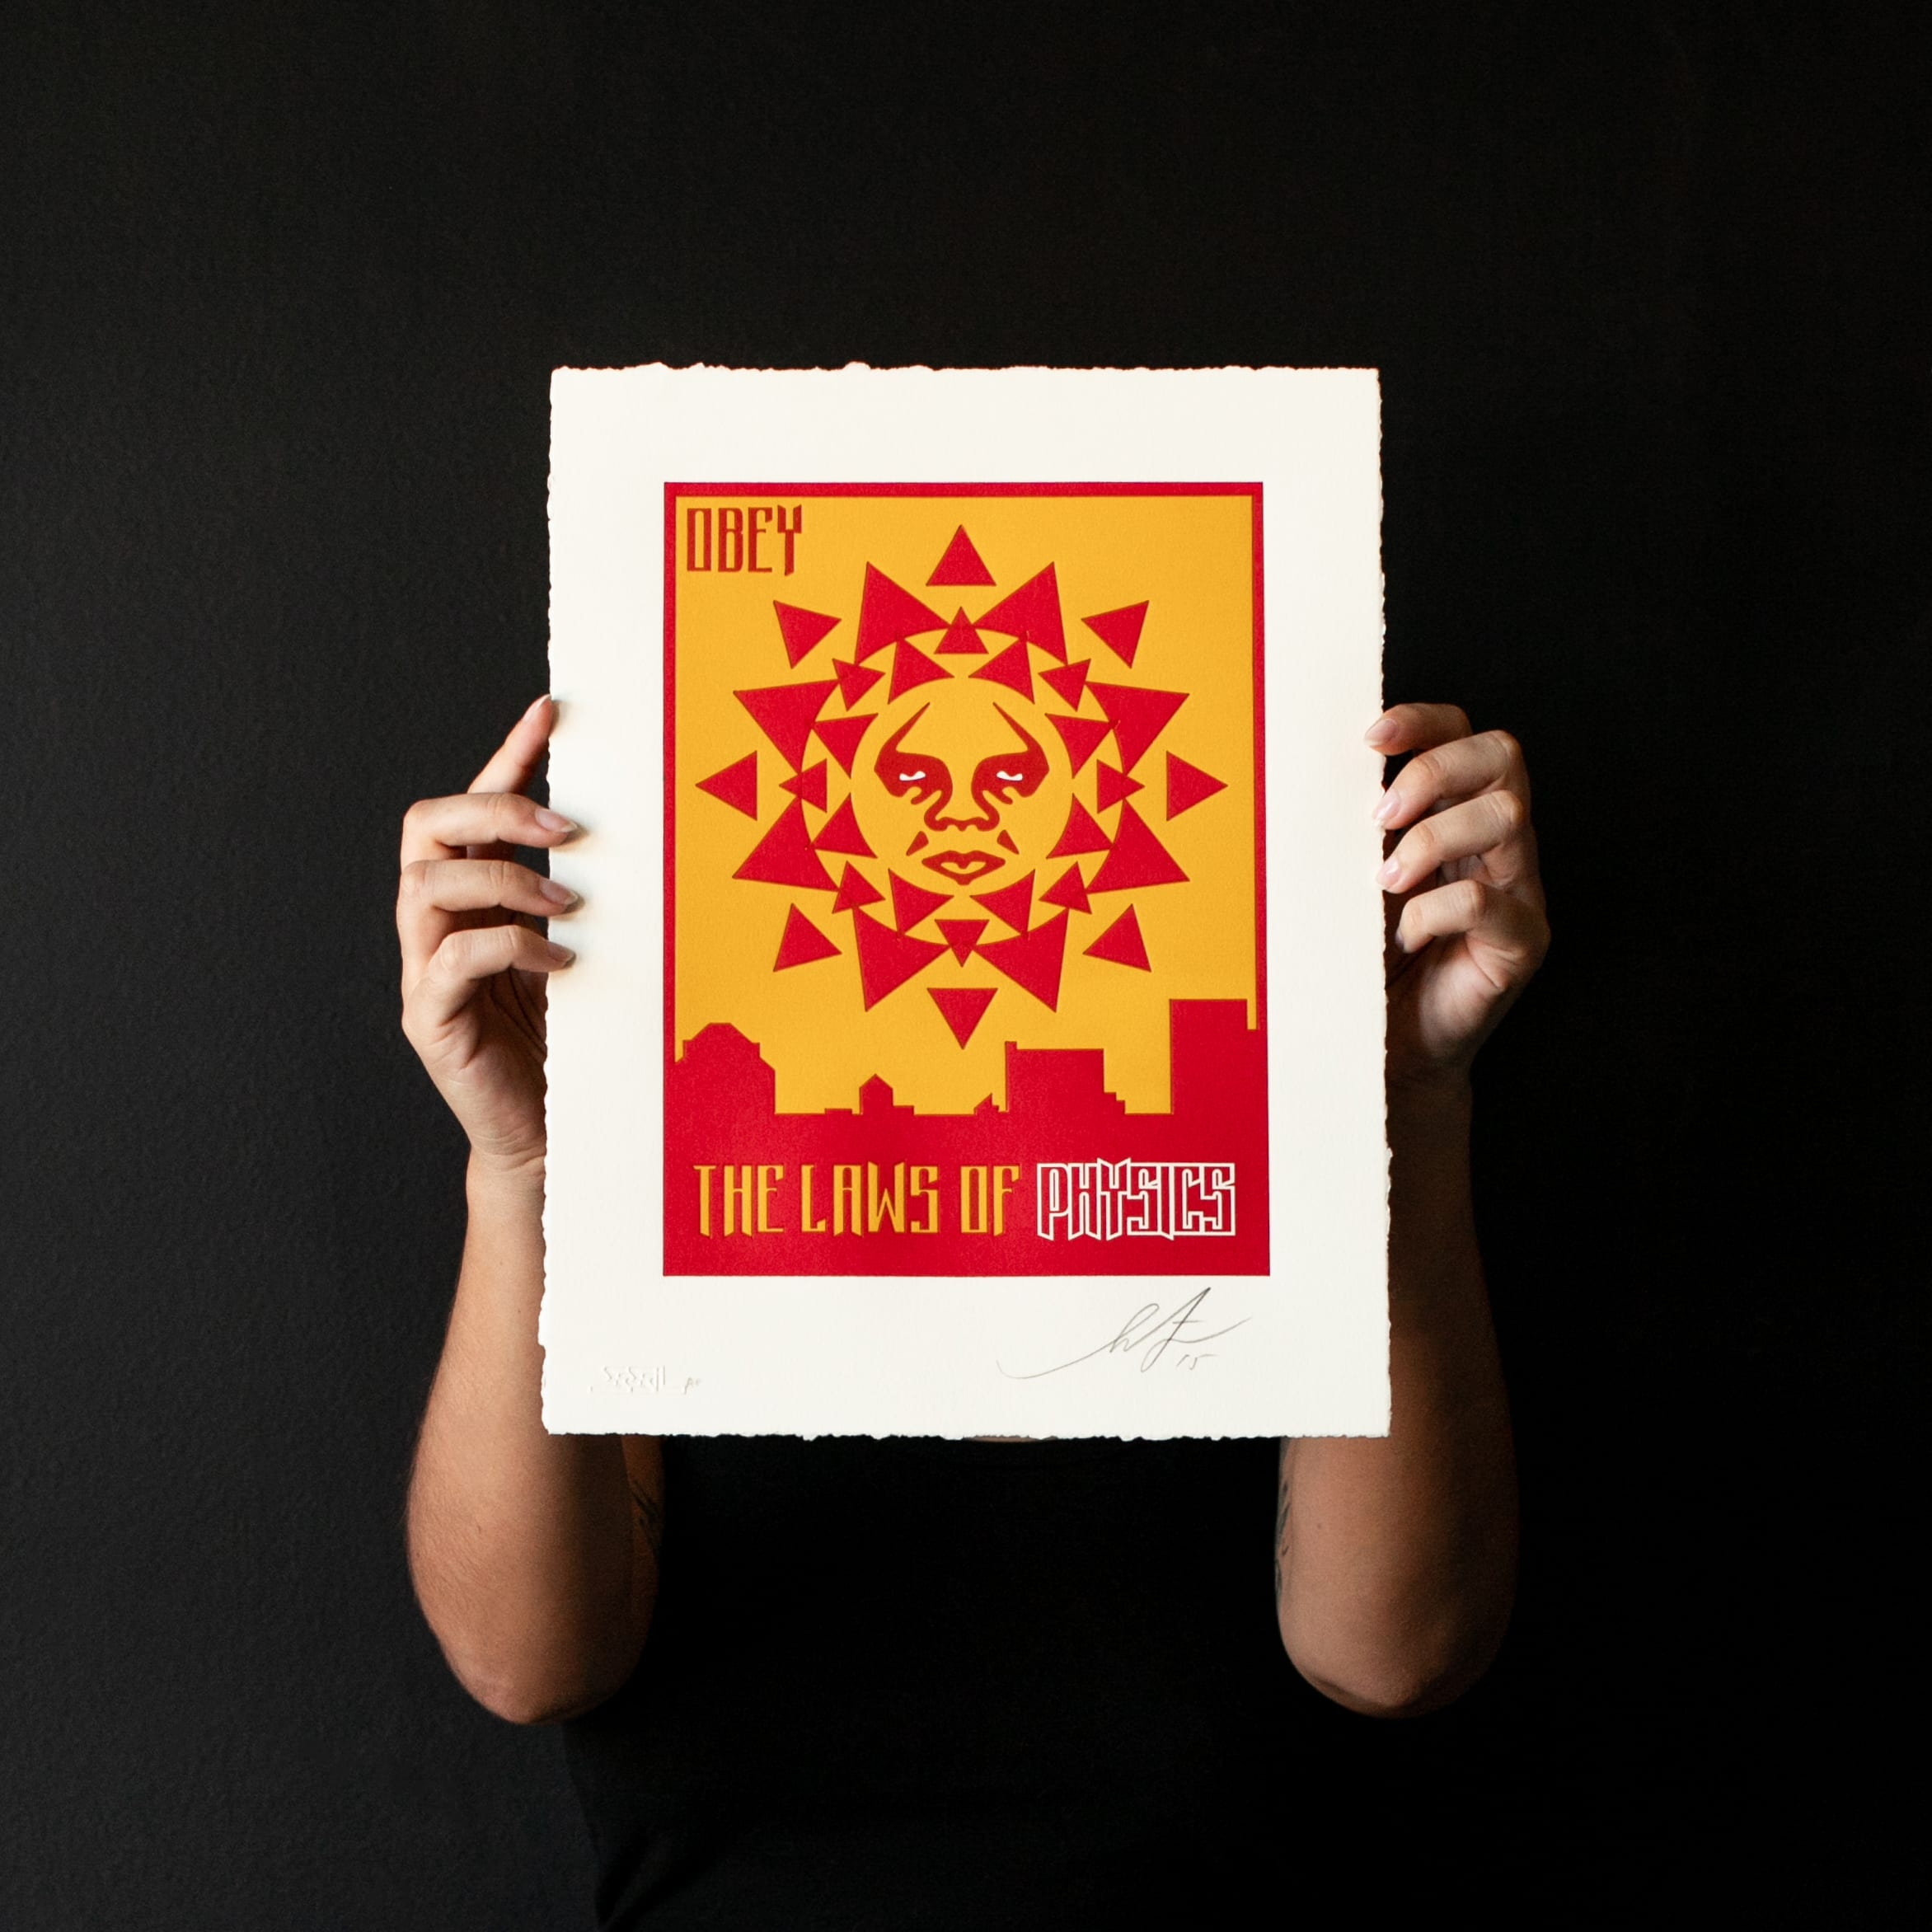 The laws of physics - Shepard Fairey Image 3